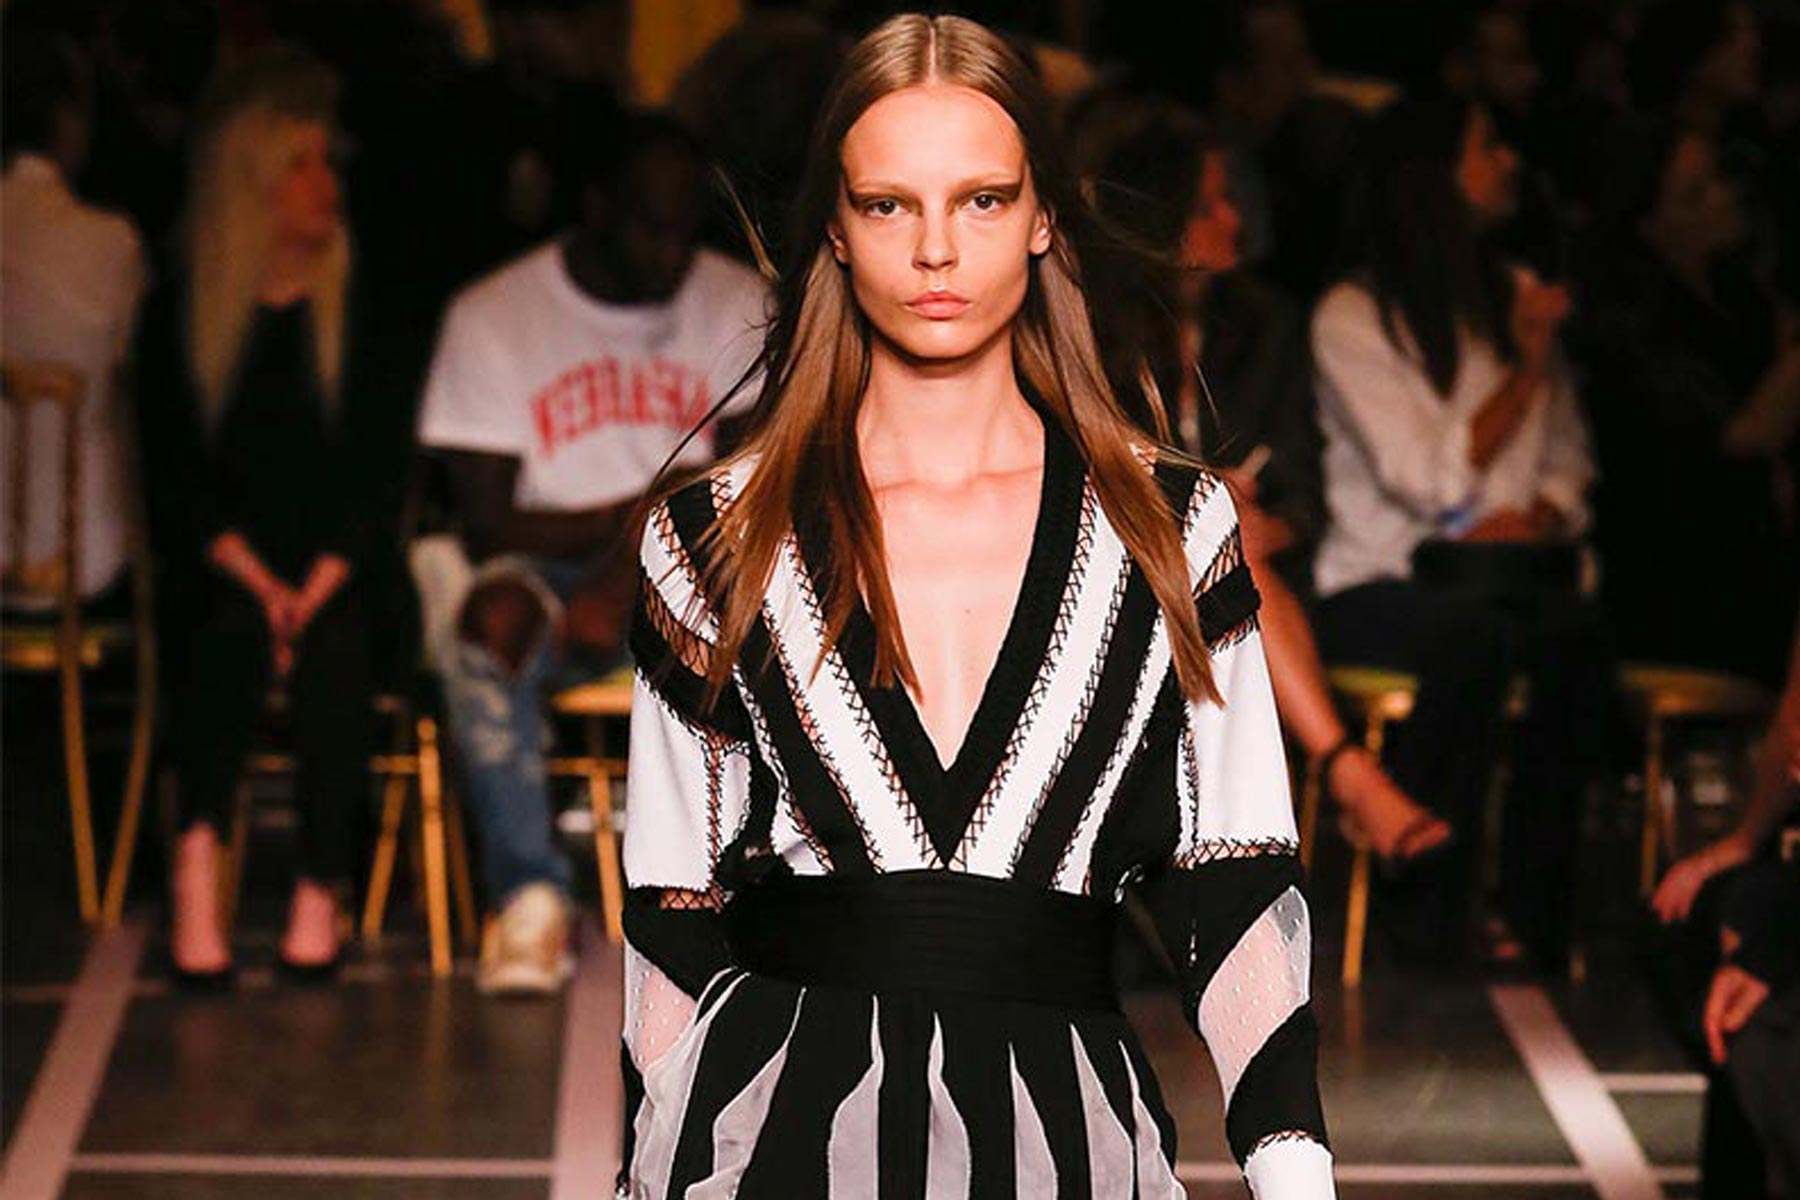 GIVENCHY SPRING SUMMER 2015 Paris Fashion Week